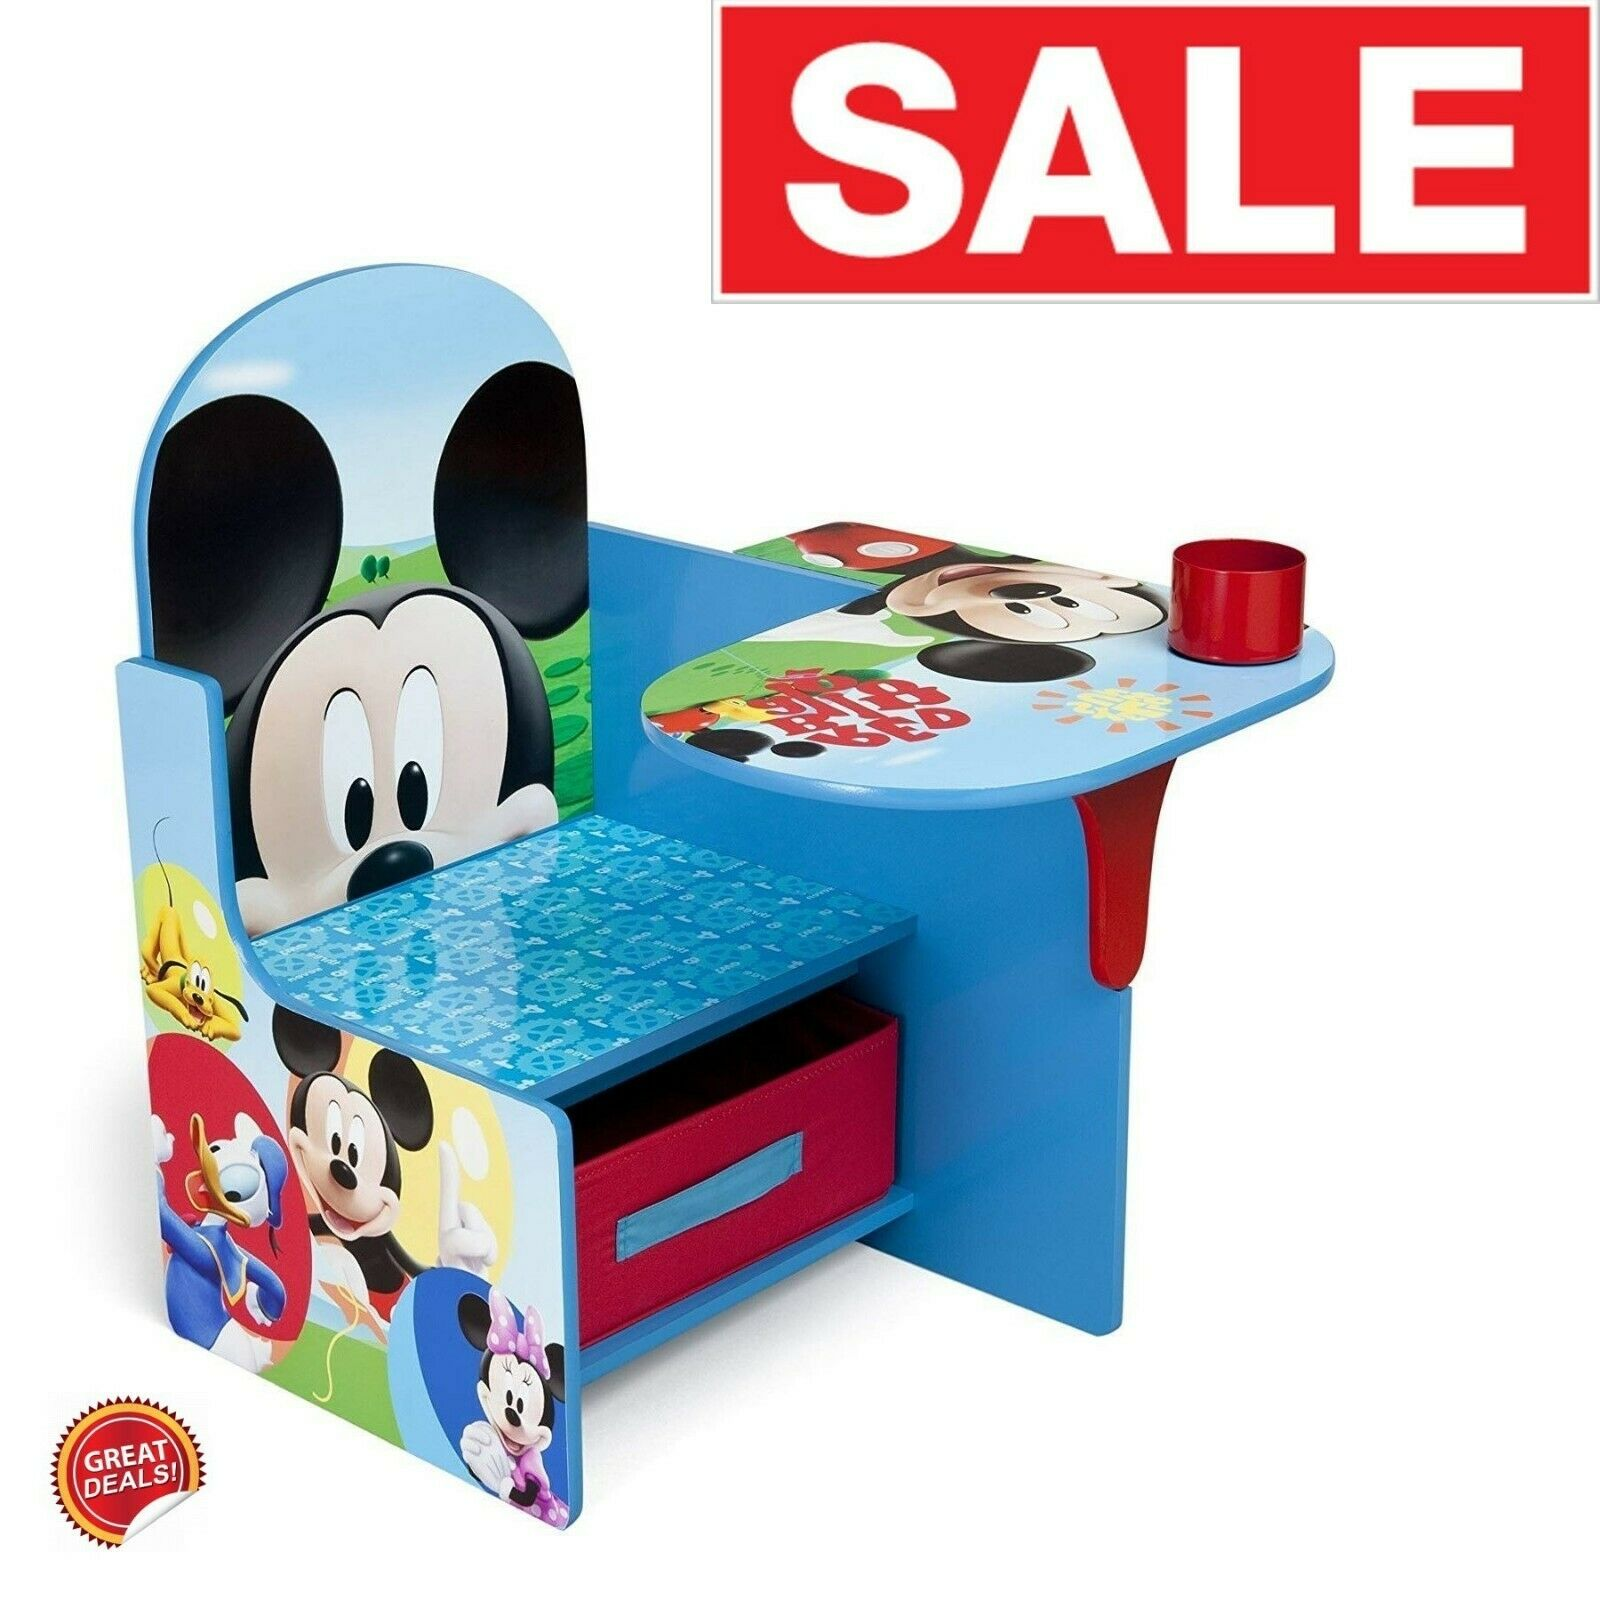 Chair And Table For Kids Kid Activity Toddler Art Play Woode